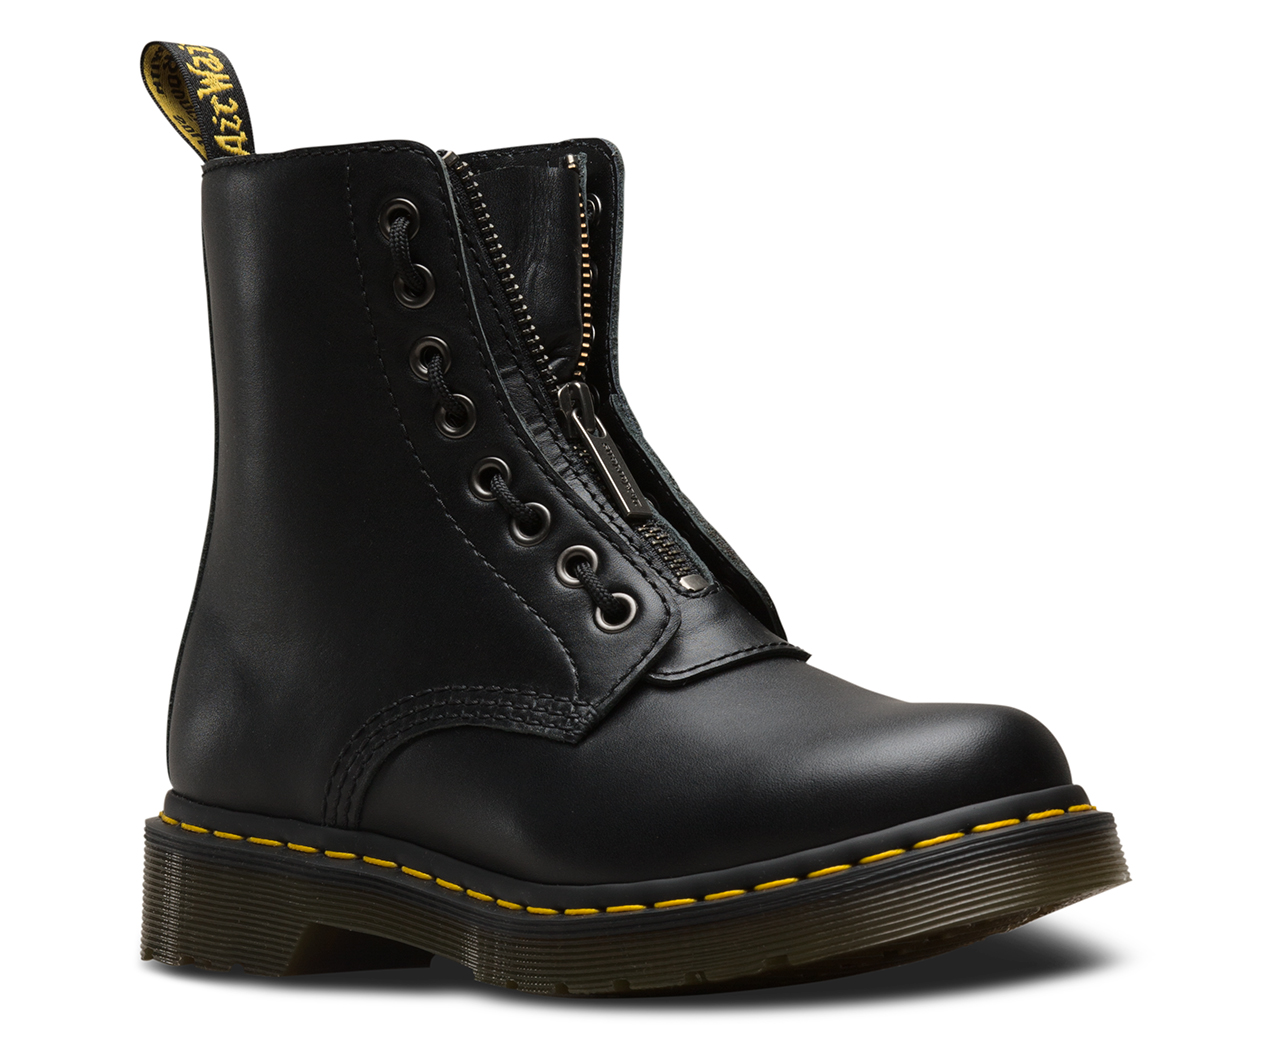 DR MARTENS 1460 PASCAL FRONT ZIP NAPPA